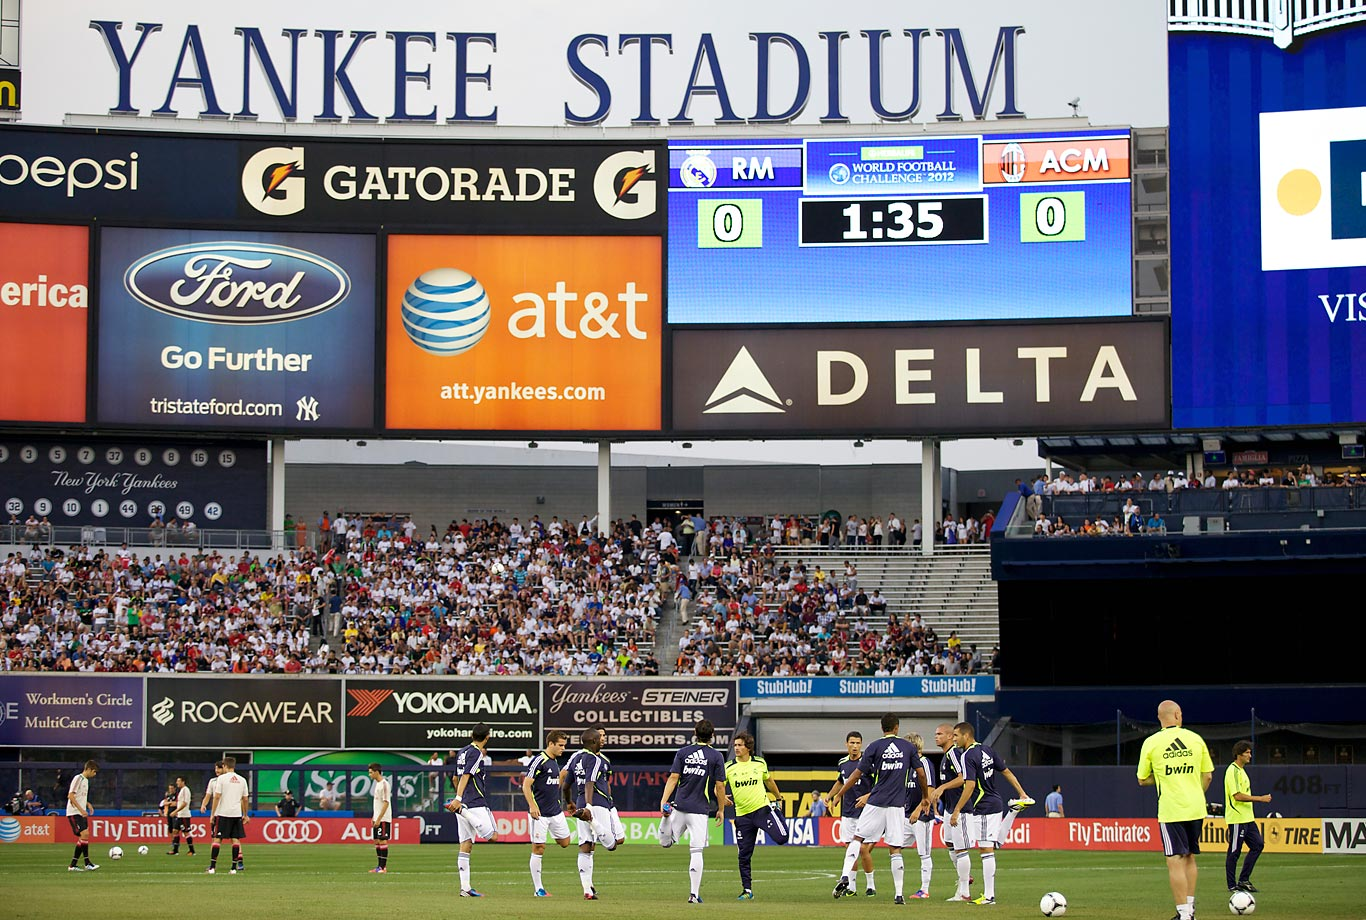 Real Madrid played AC Milan at Yankee Stadium on Aug. 8, 2012.